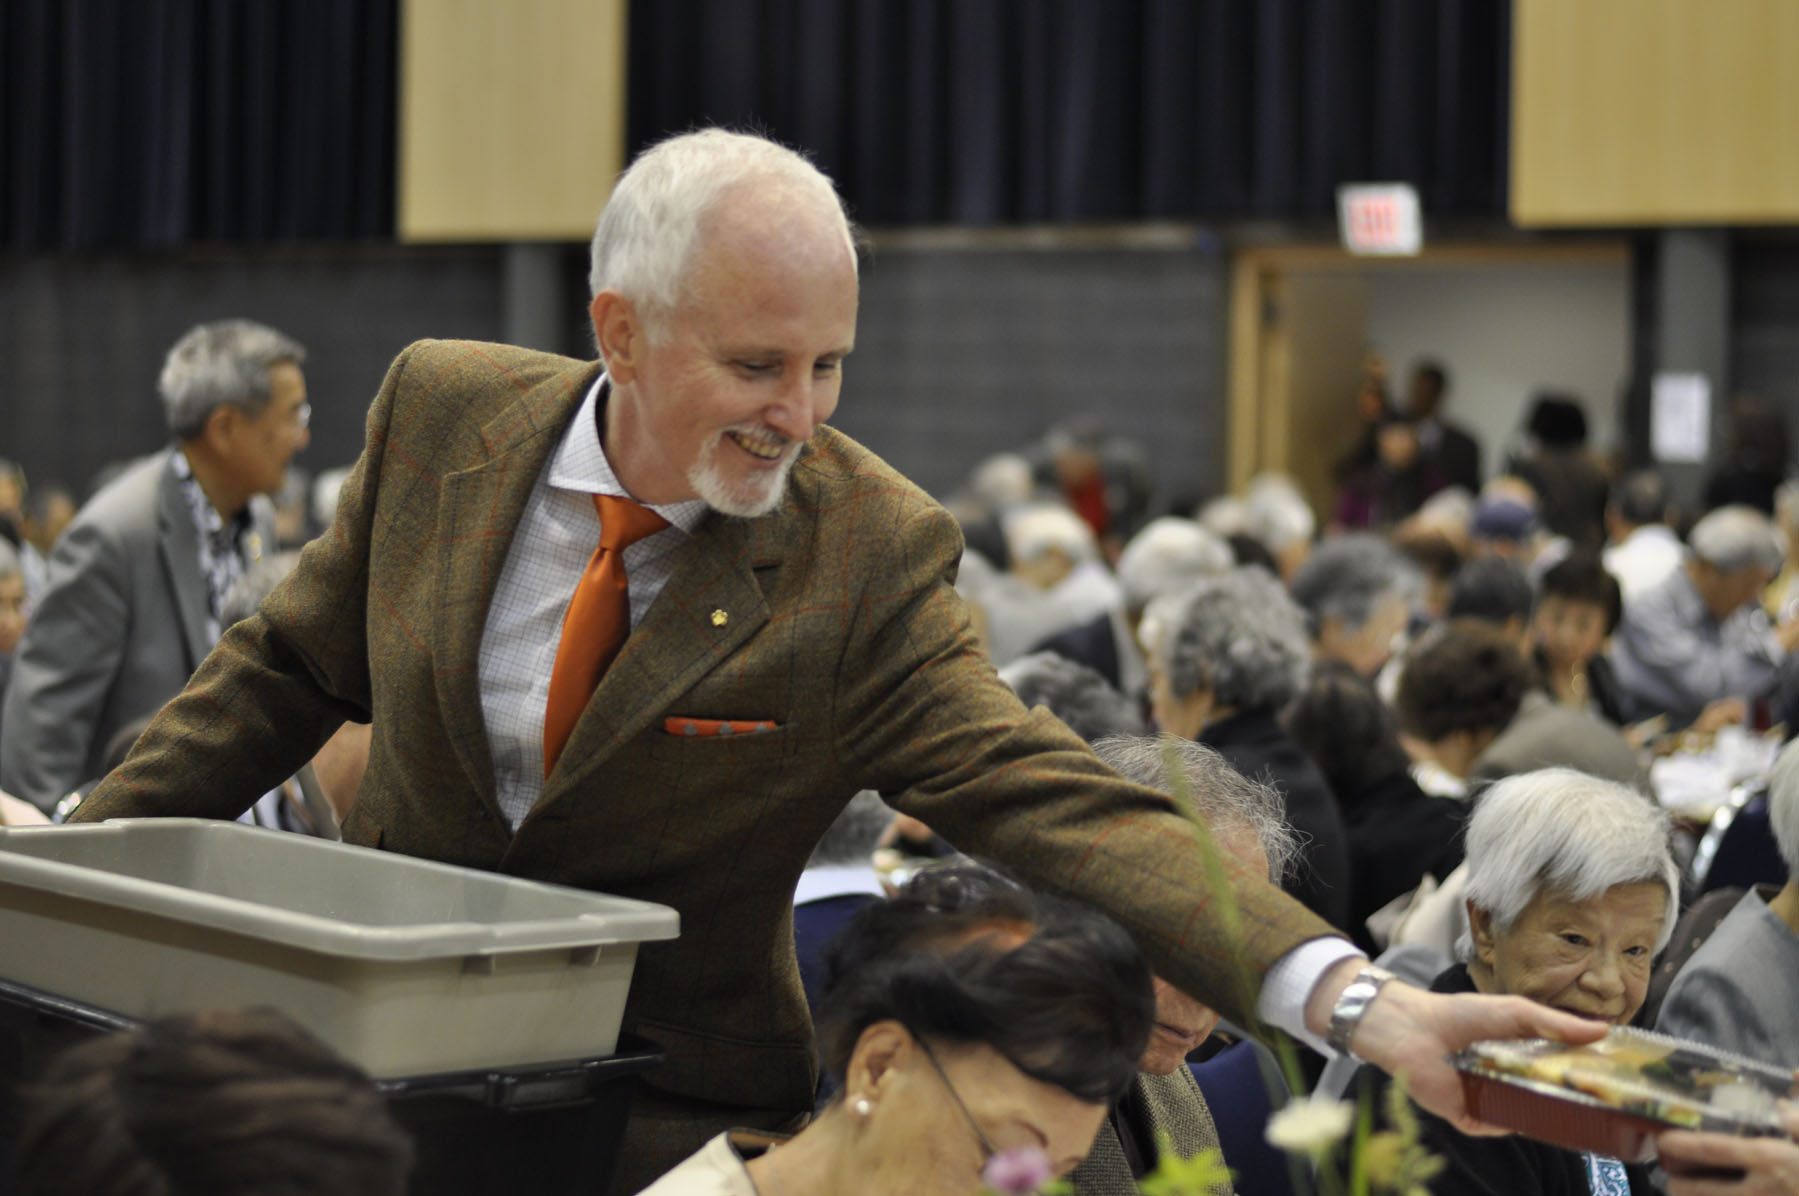 Bentos being served by JCCC Director James Heron inside of the Kobayashi Hall. Photo courtesy: Matthew O'Mara